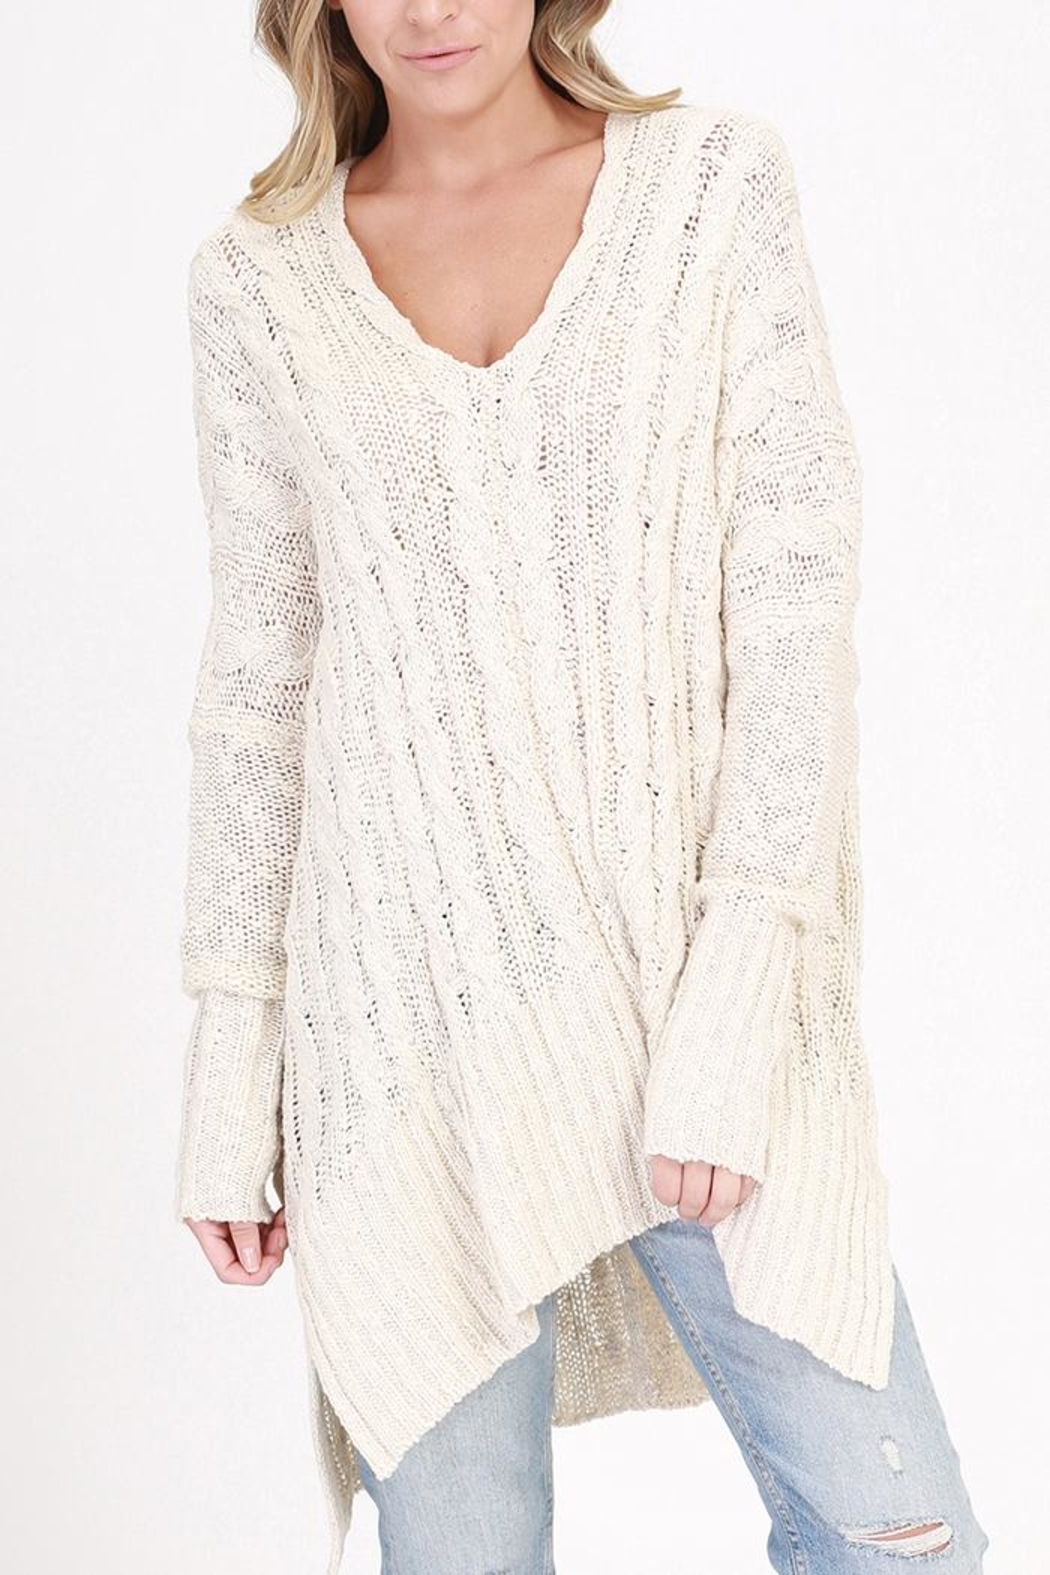 HYFVE V-Neck Cable-Knit Sweater from Illinois by The Colette ...